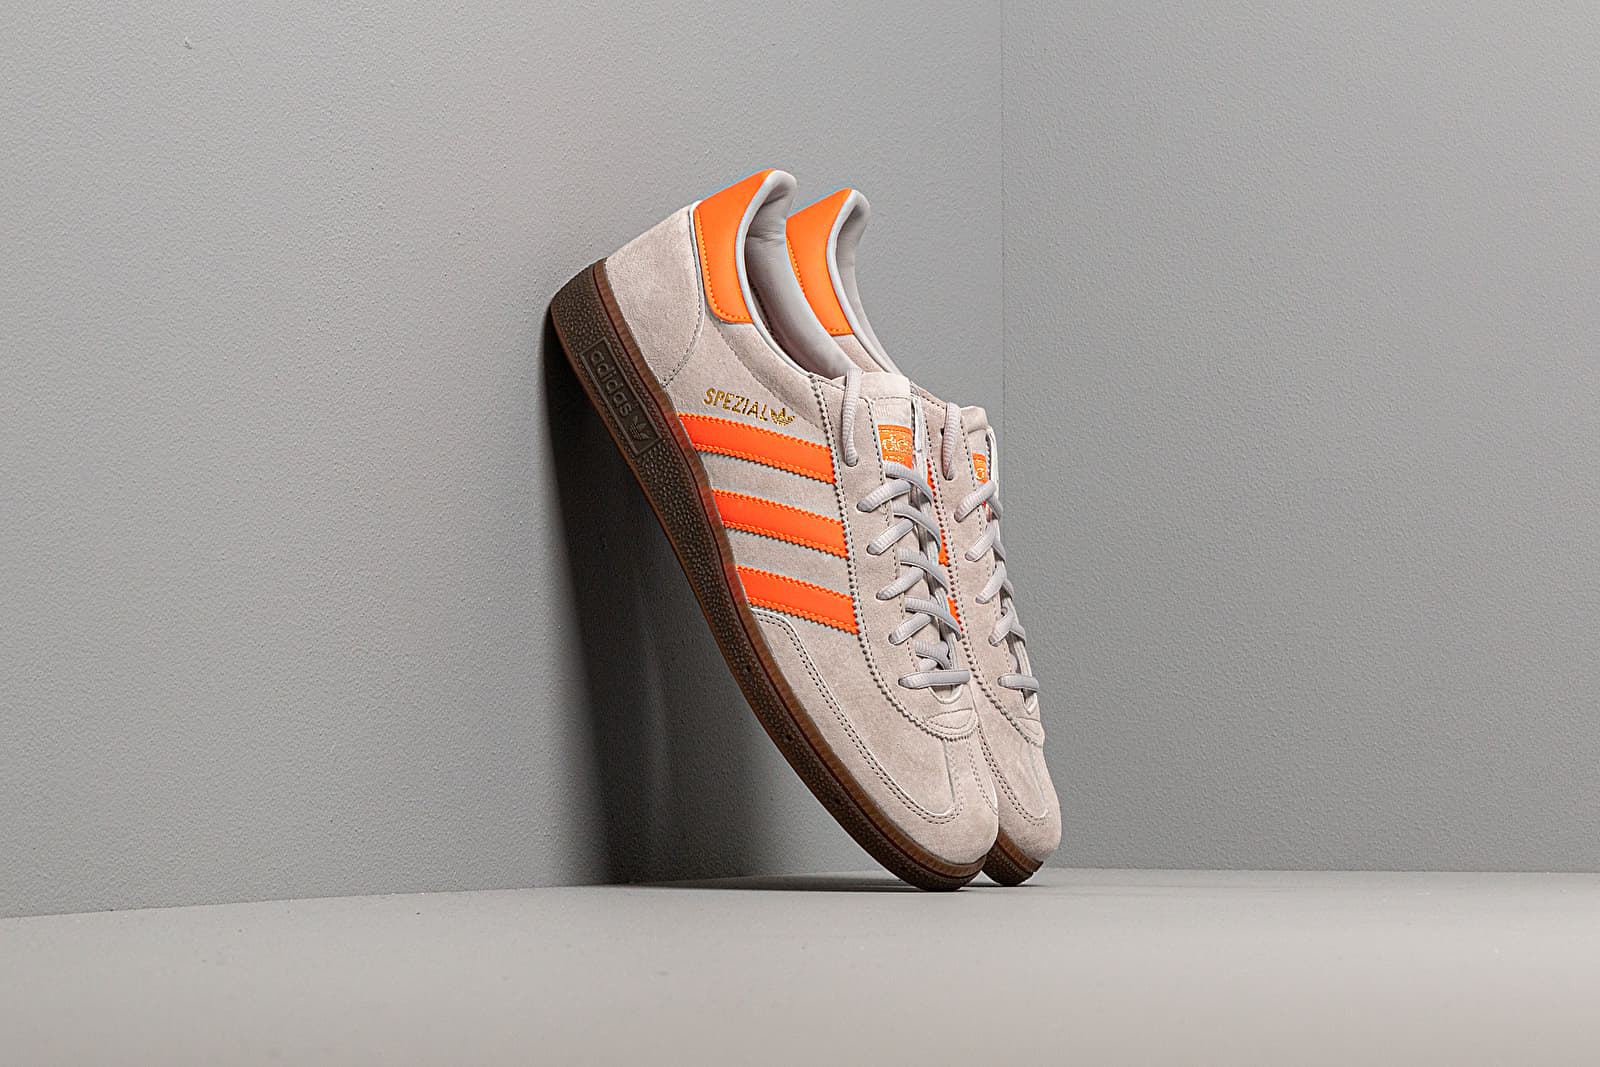 adidas Handball Spezial Grey Two Hi Res Collegaite Gold